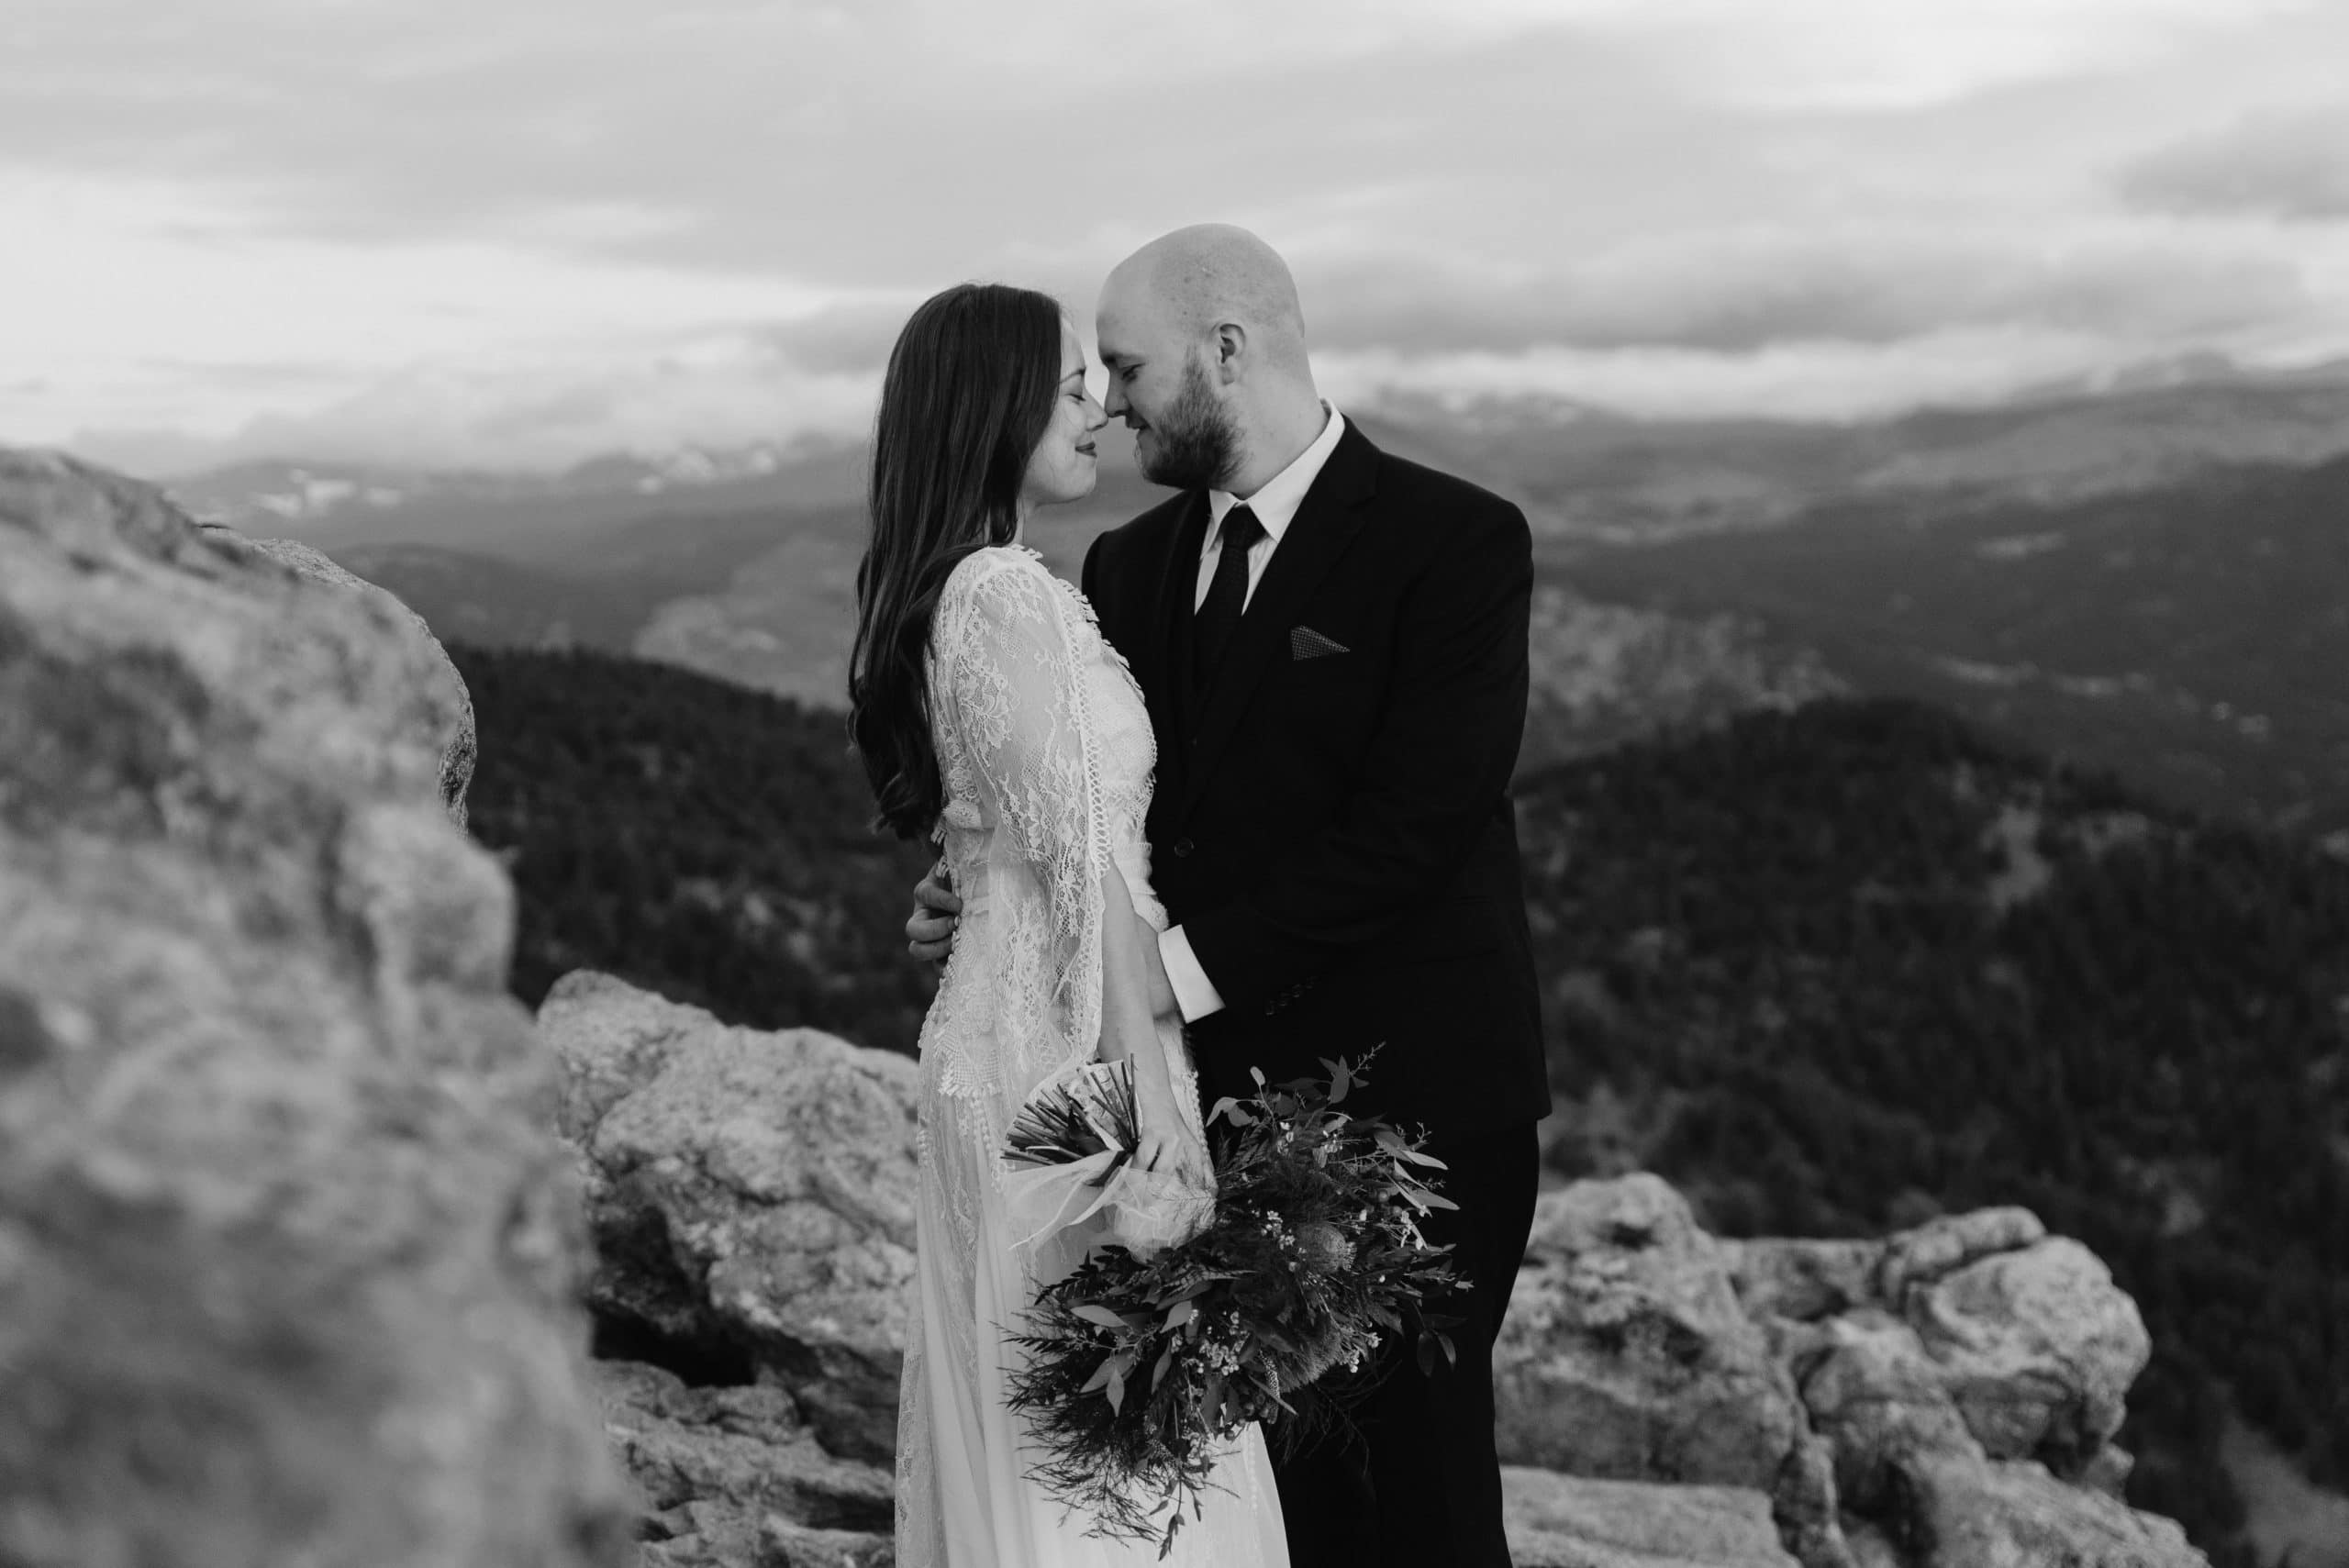 Boulder Colorado Wedding in the Mountains at Lost Gulch Overlook